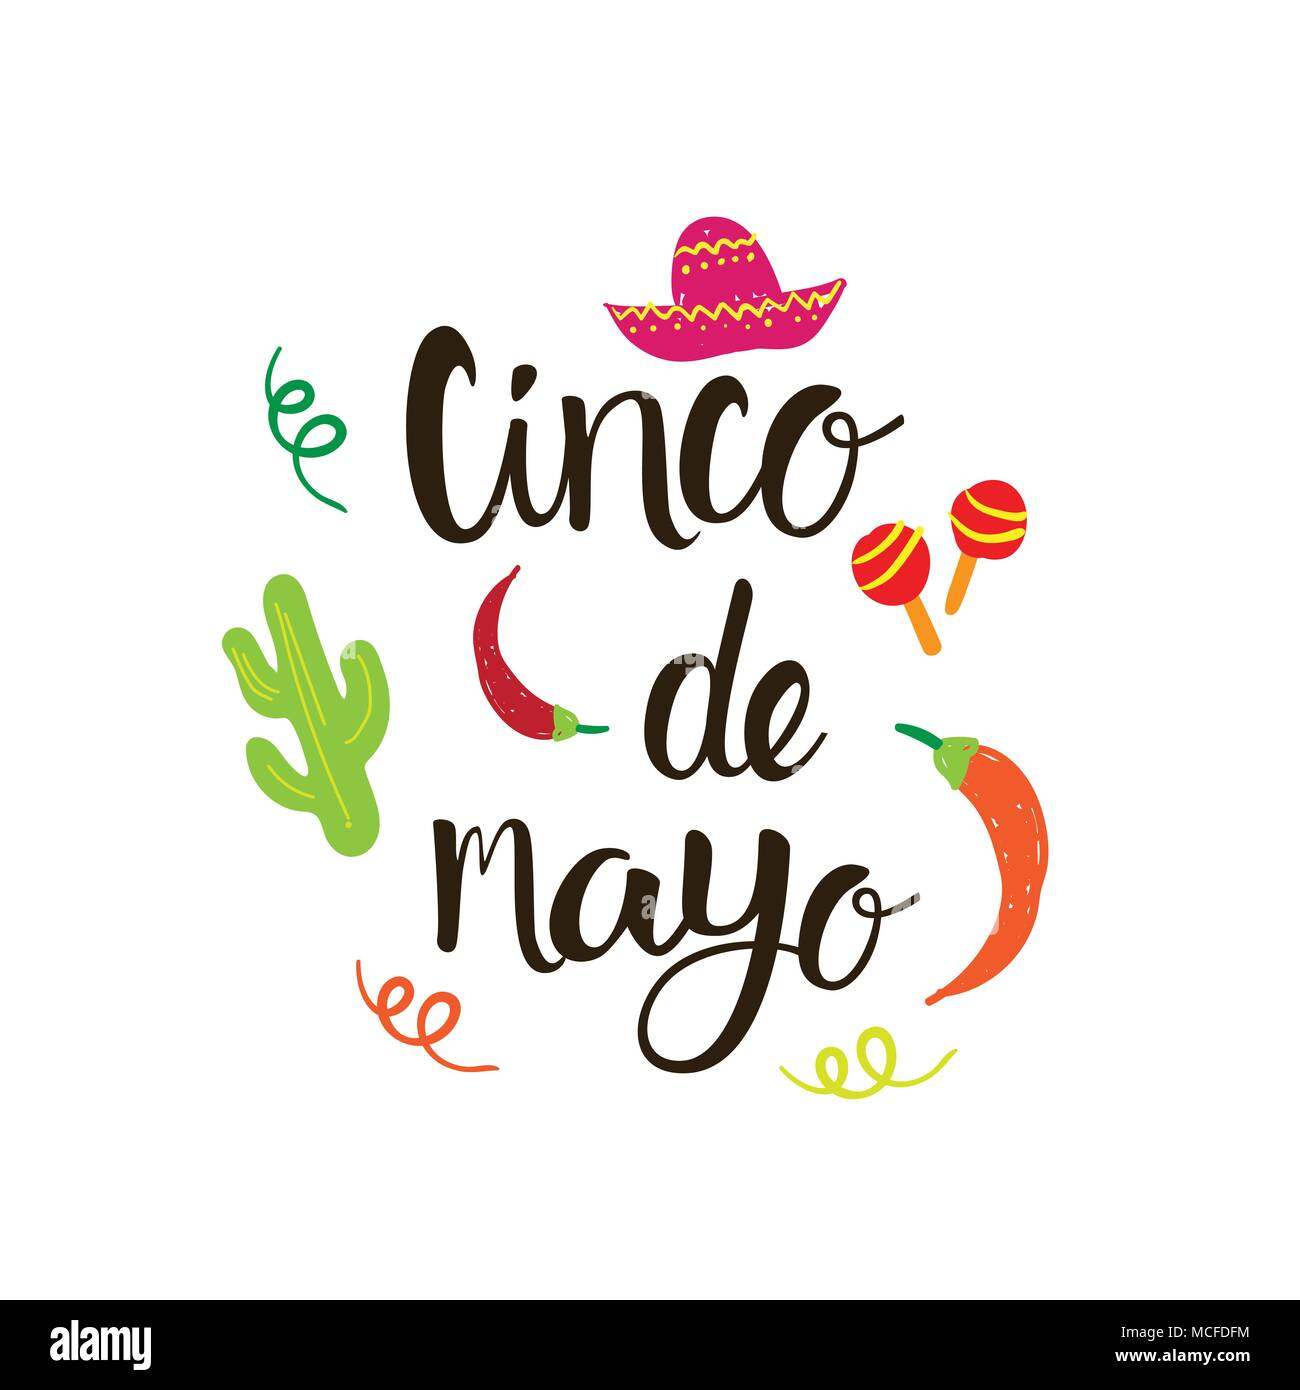 Cinco de mayo mexican holiday greeting card hand drawn lettering cinco de mayo mexican holiday greeting card hand drawn lettering background vector illustration m4hsunfo